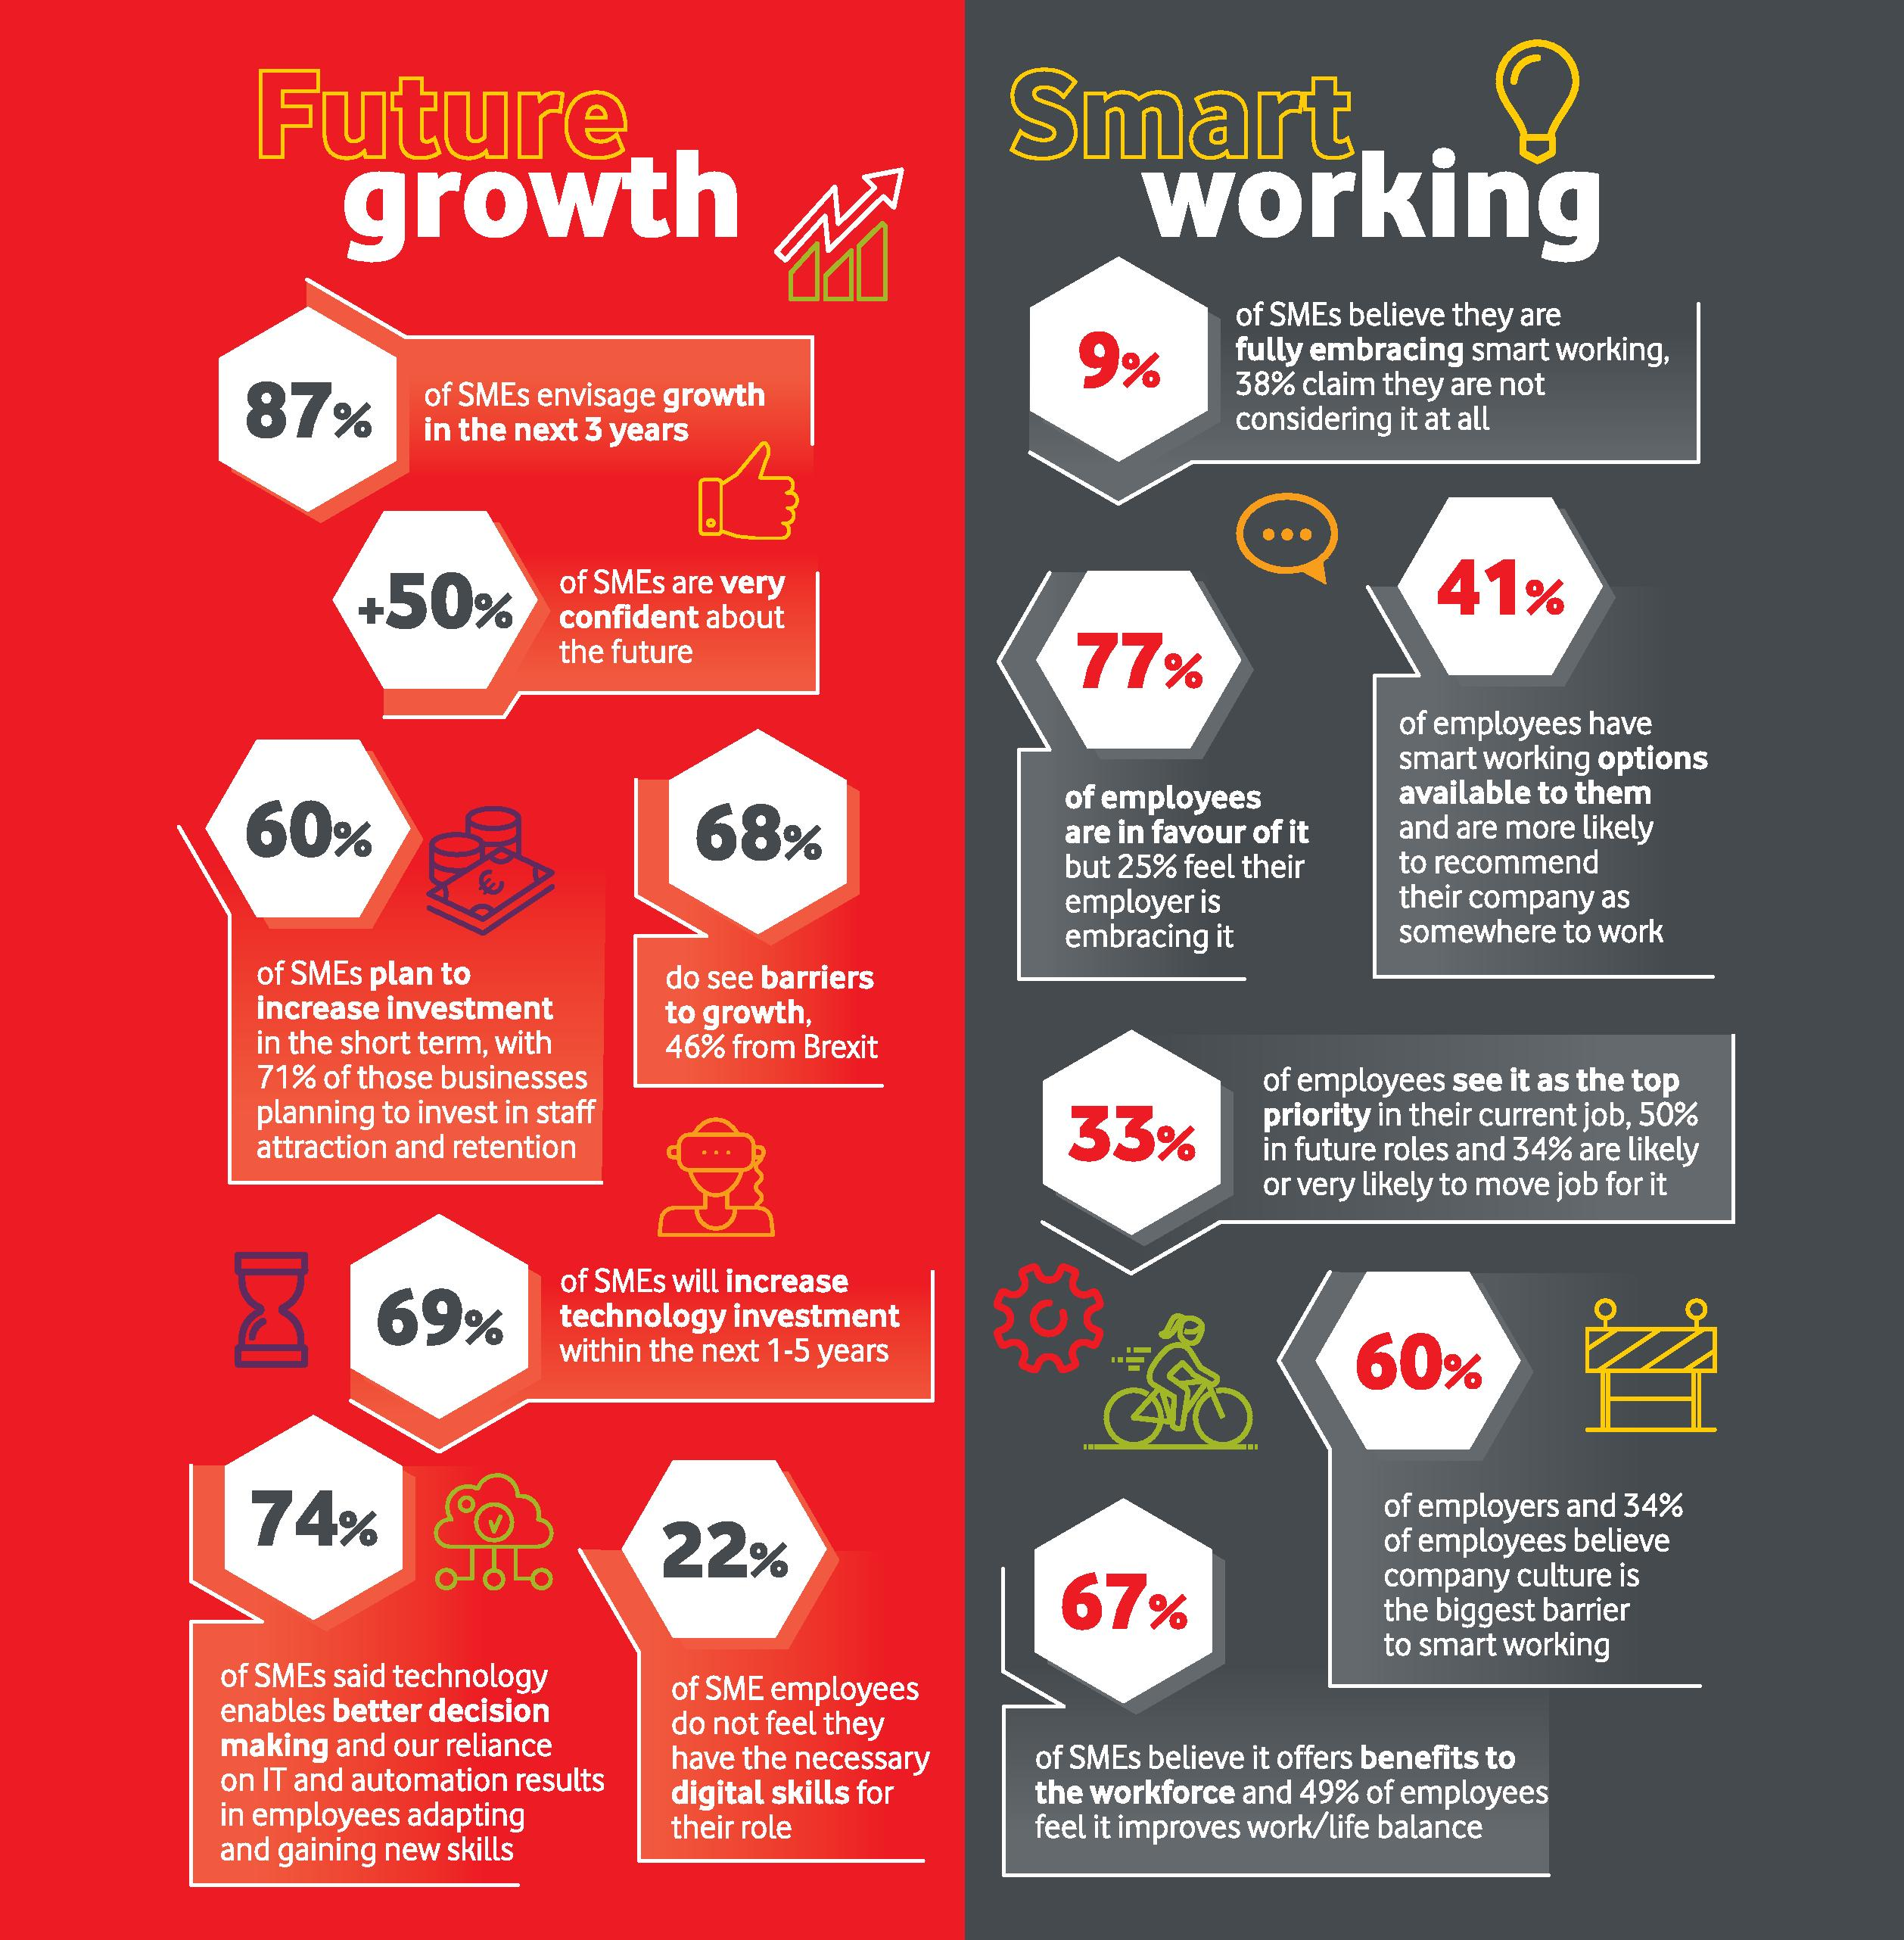 An infographic displaying various statistics about the benefits of smart working.